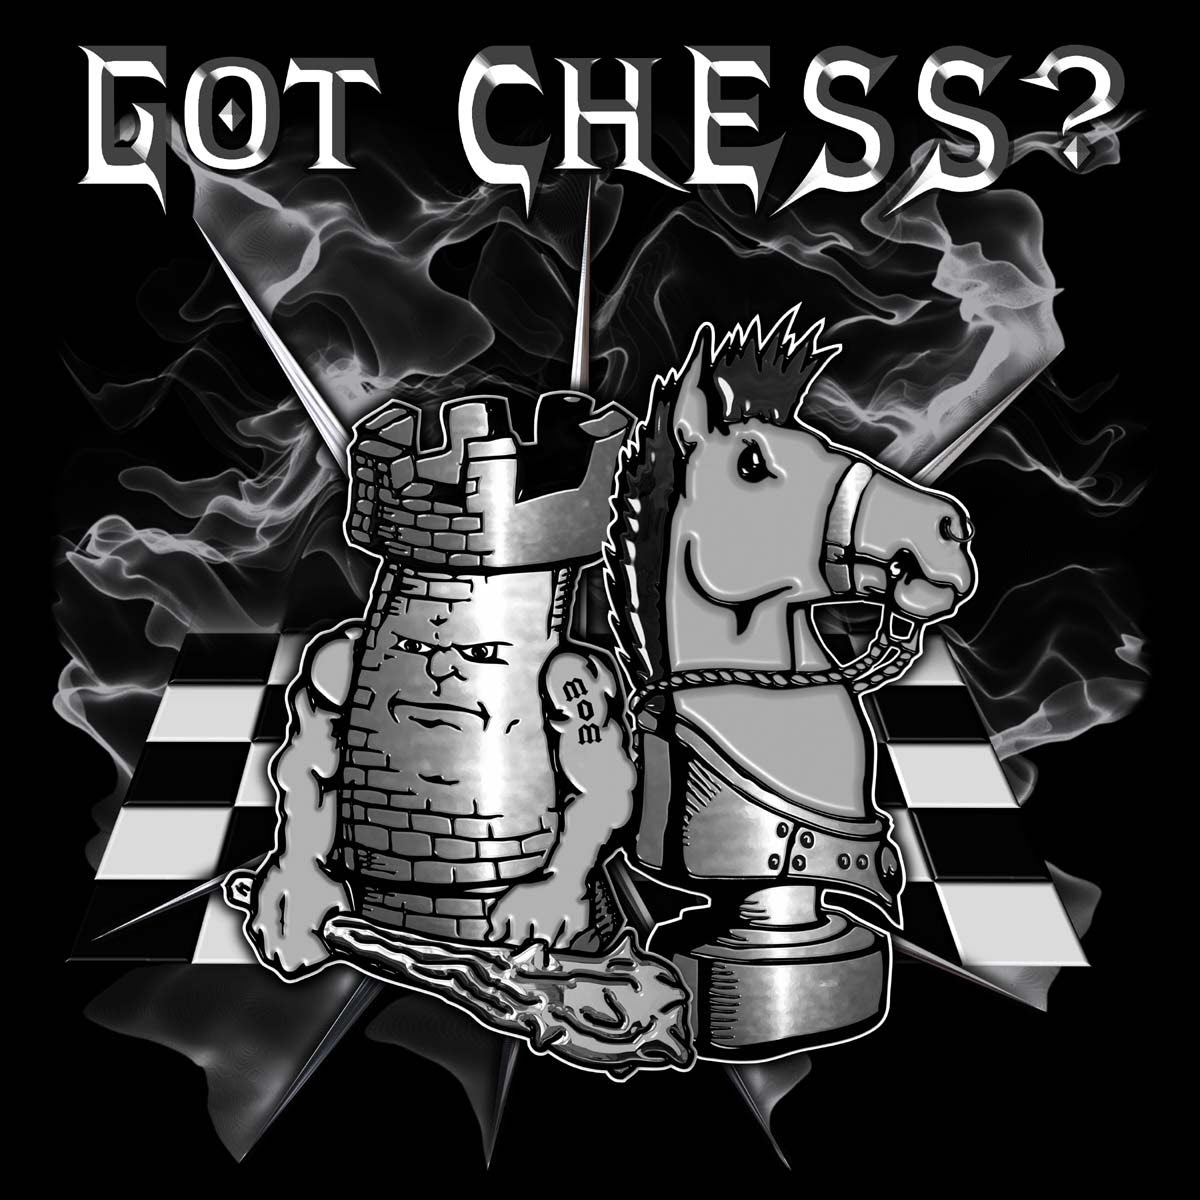 Got Chess?